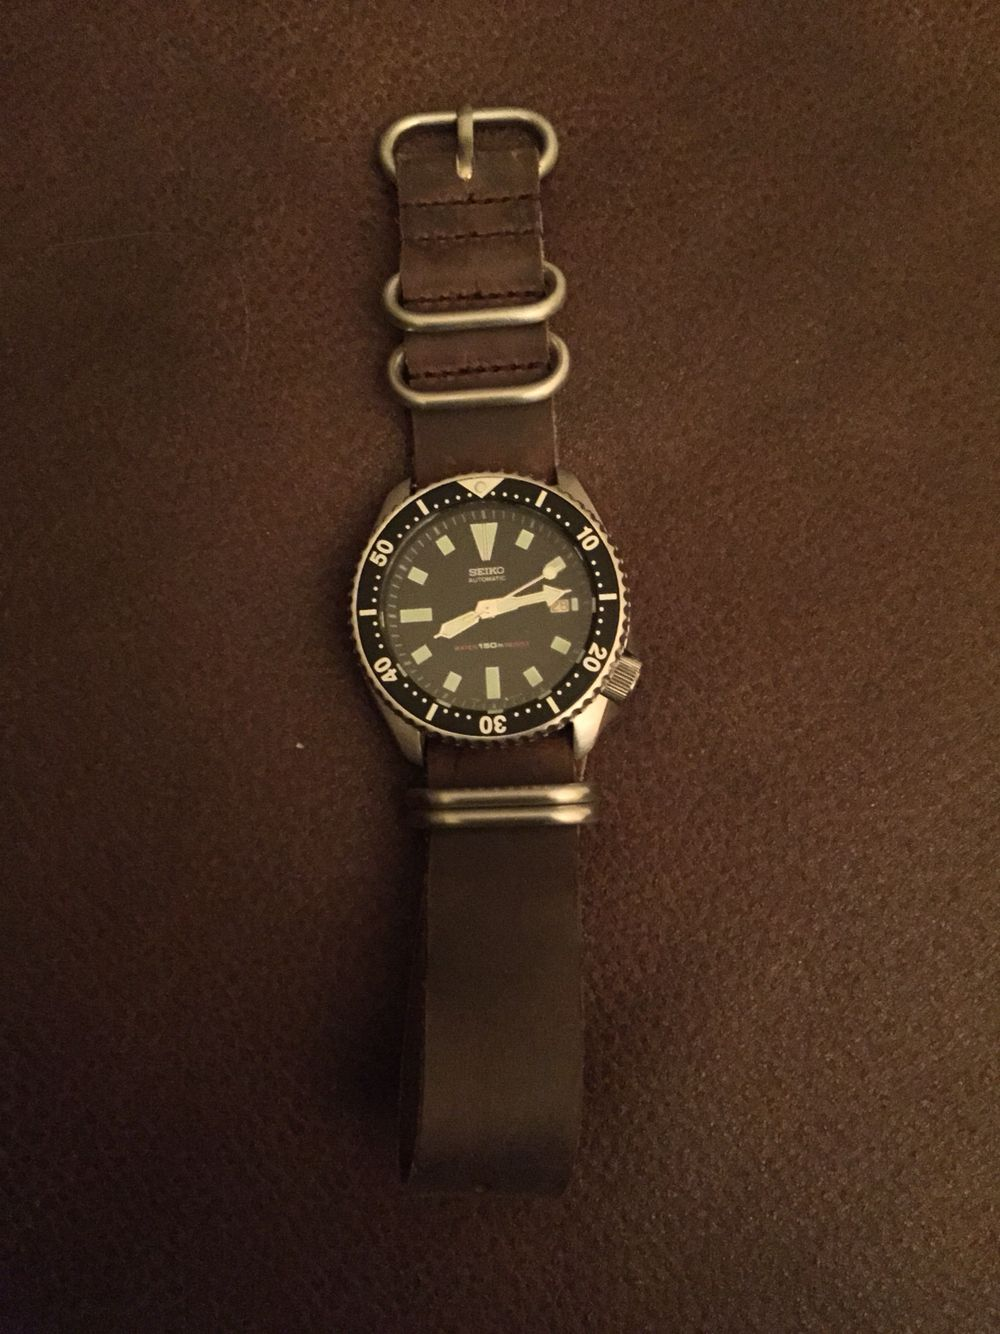 My 1993 Vintage Seiko 7002 Dive Watch on a Leather NATO Strap